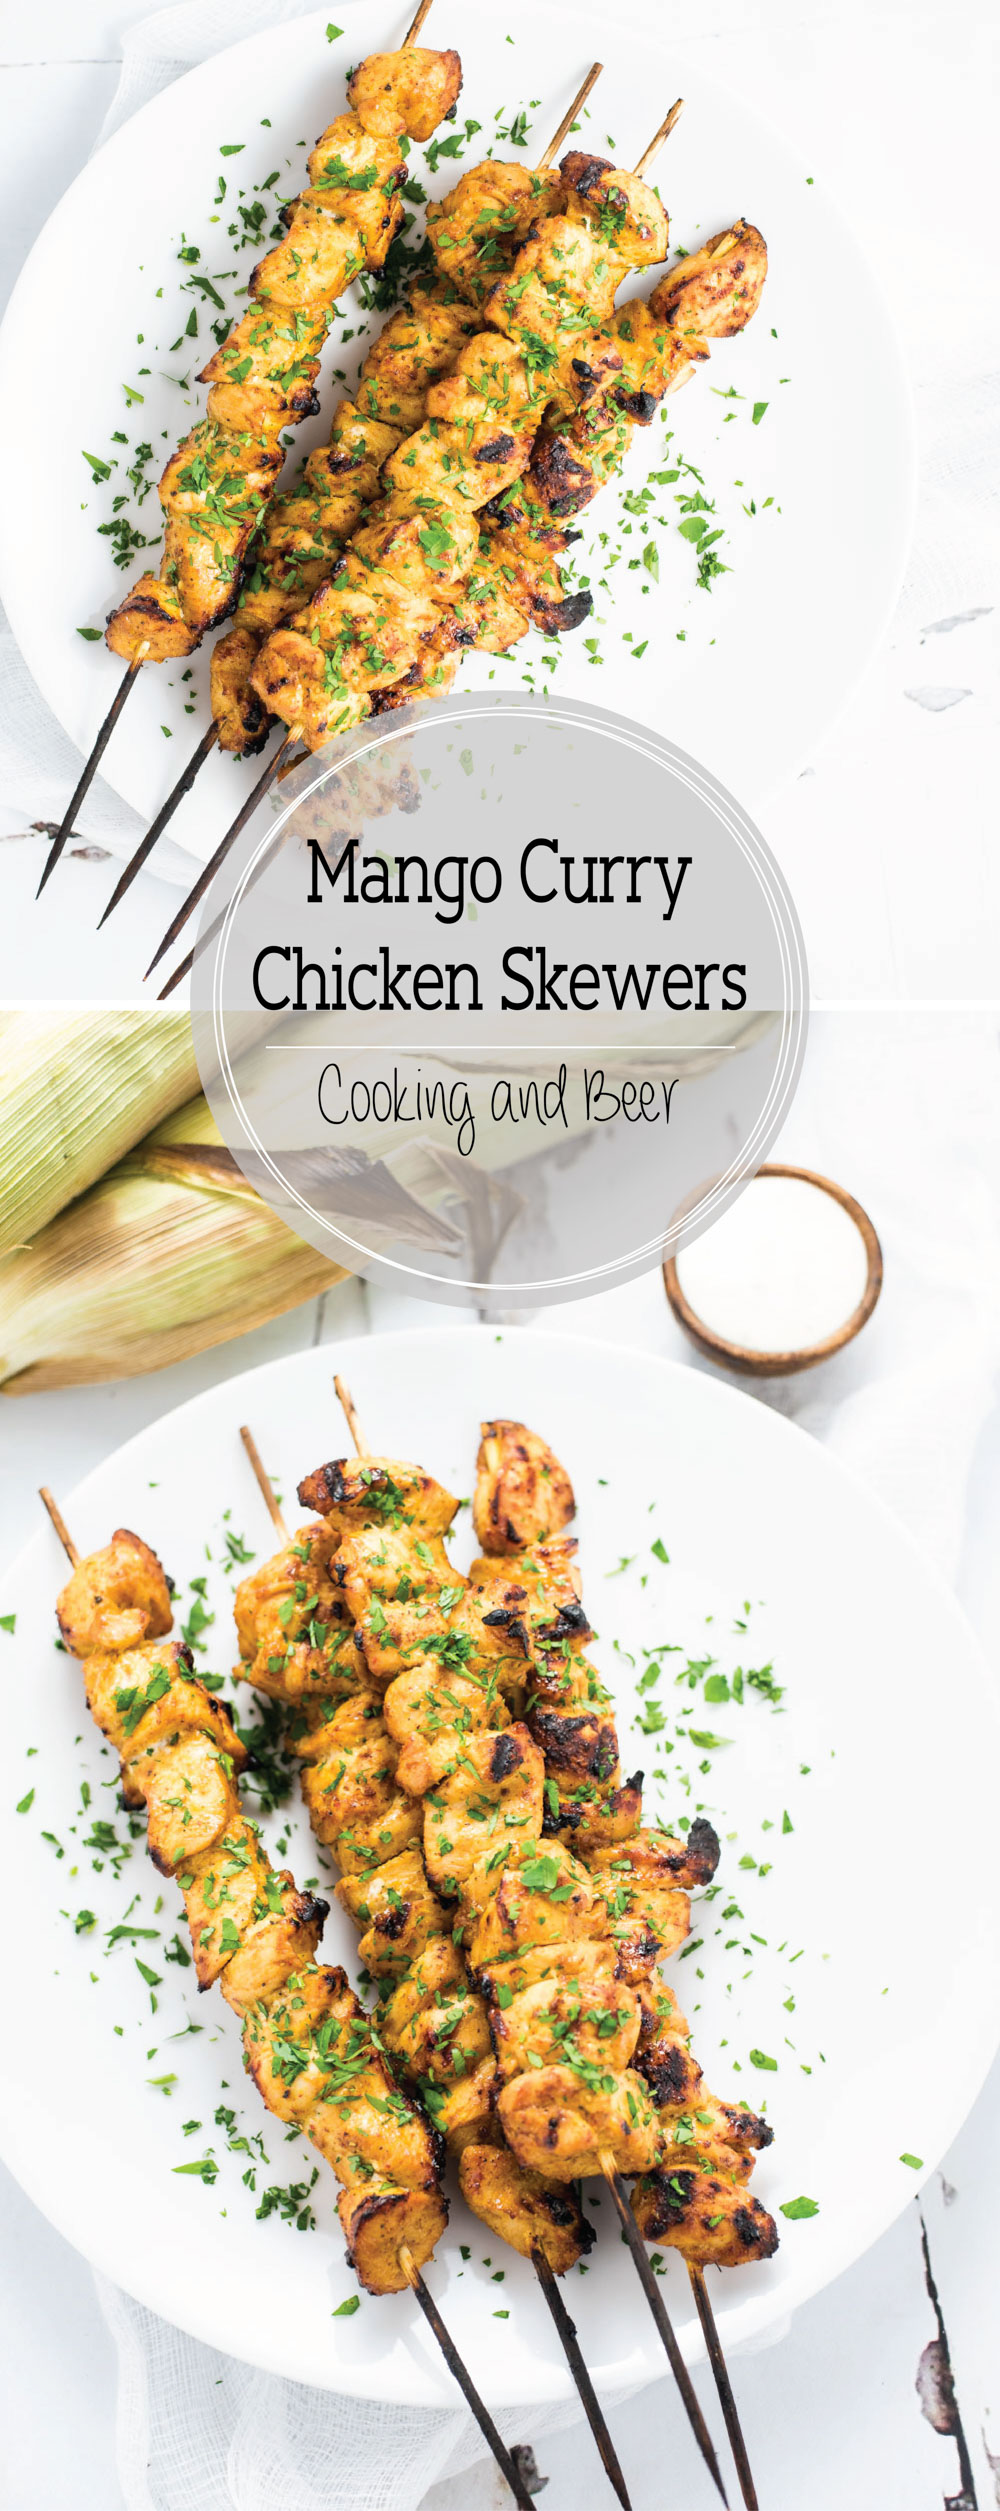 Grilled Mango Curry Chicken Skewers are an upscale outdoor weeknight or weekend dinner recipe! They are great in tacos, on salads, or all by themselves!